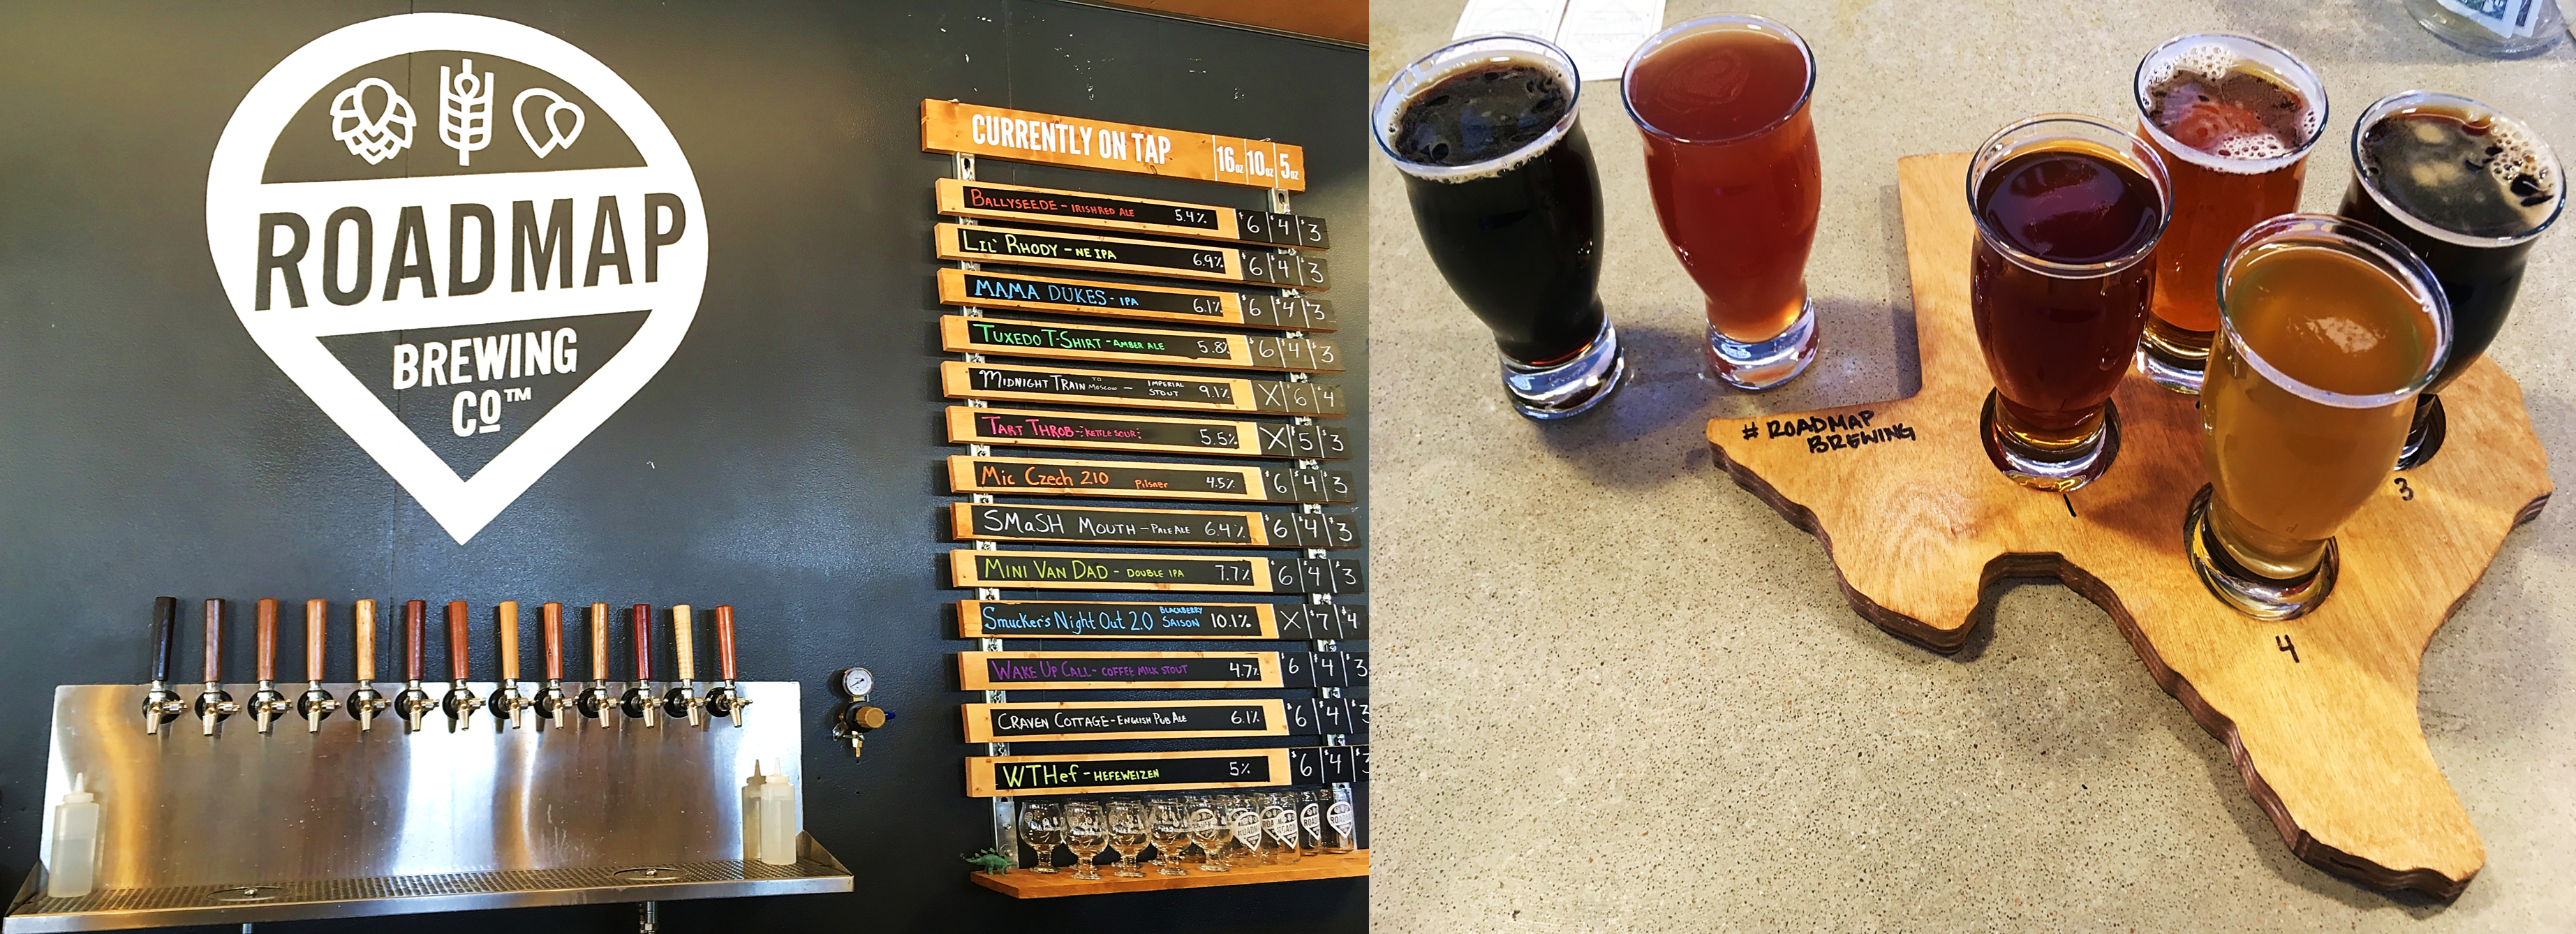 Roadmap Brewing Company san antonio